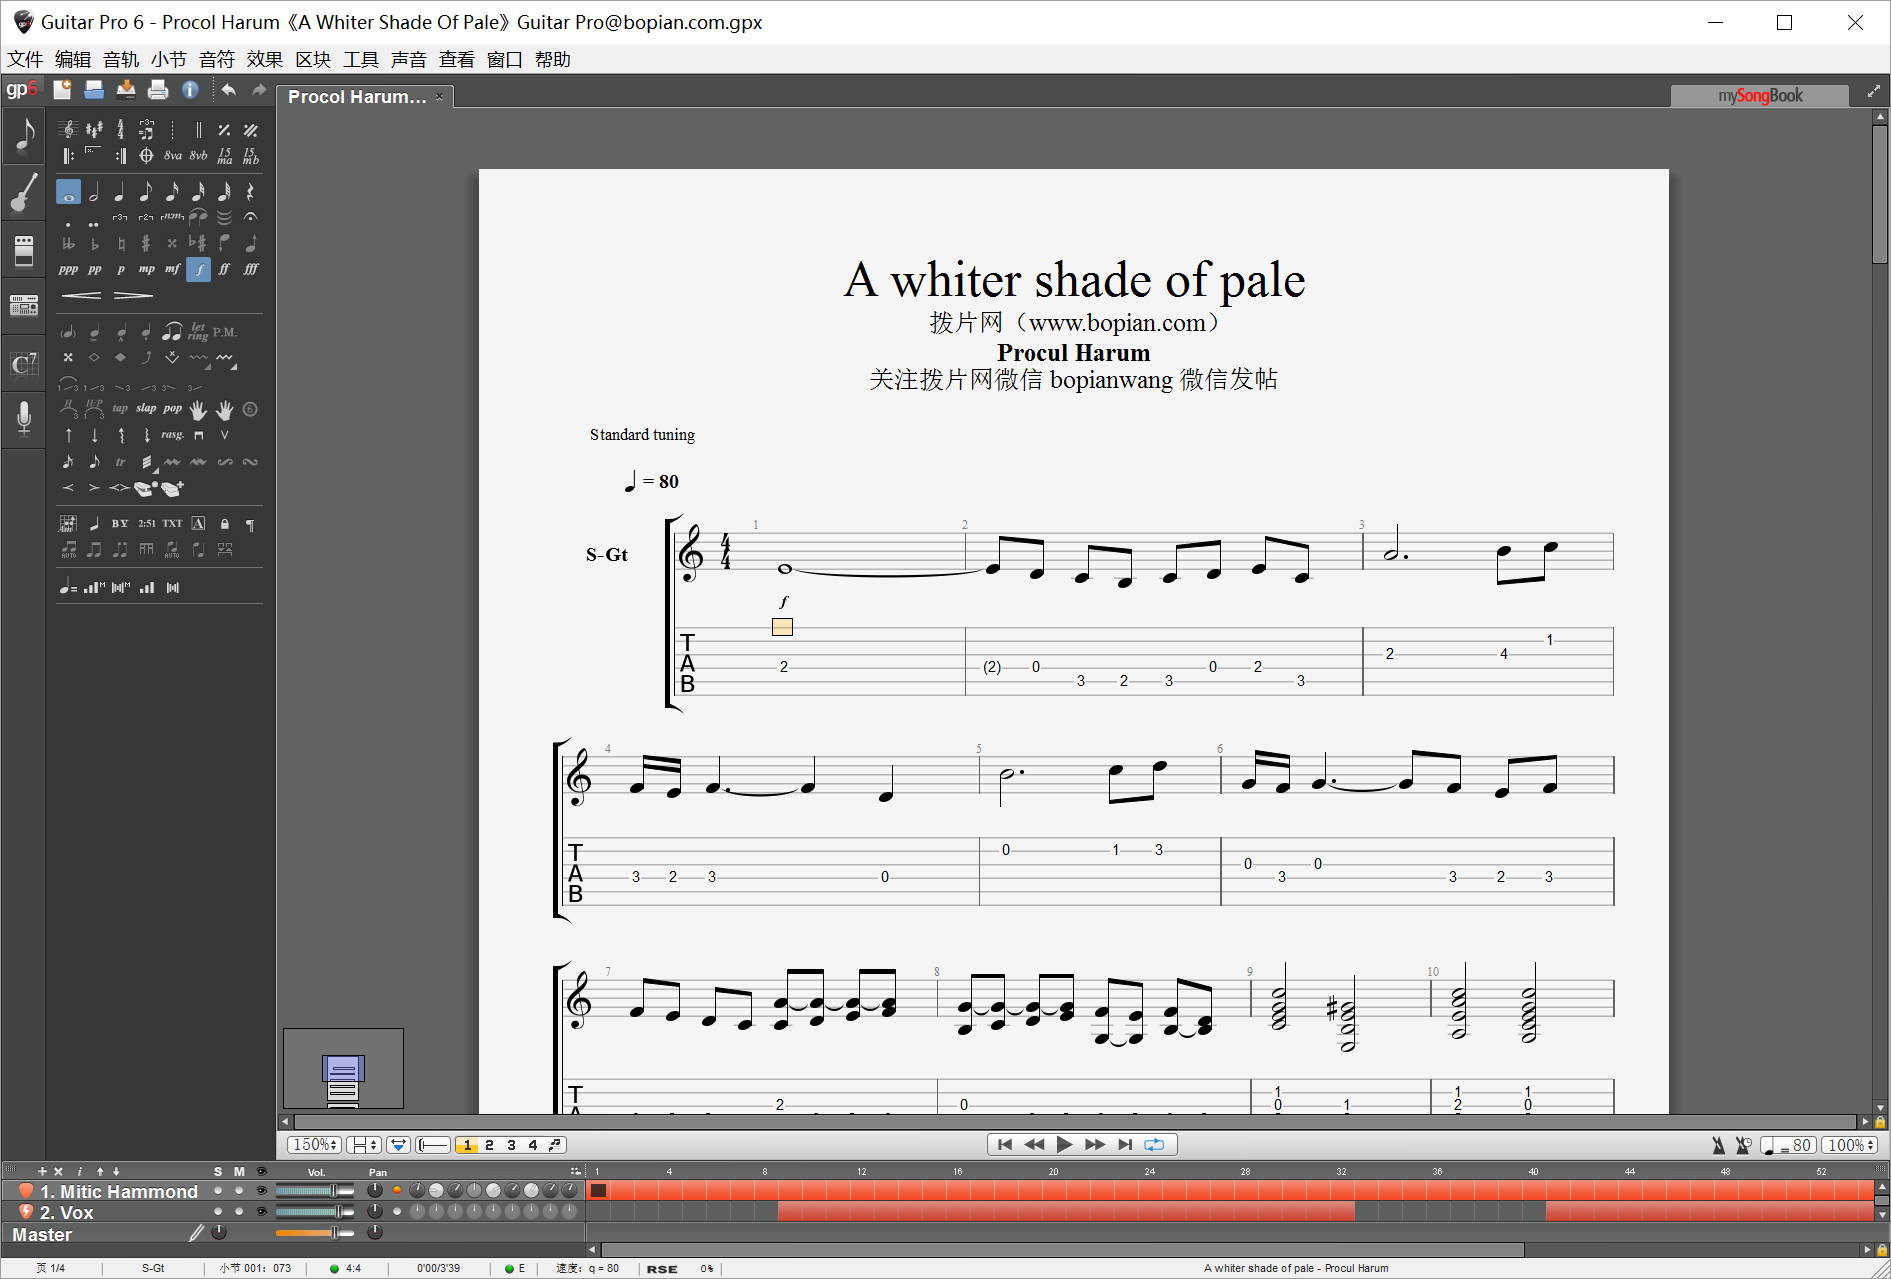 whiter shade of pale chords pdf